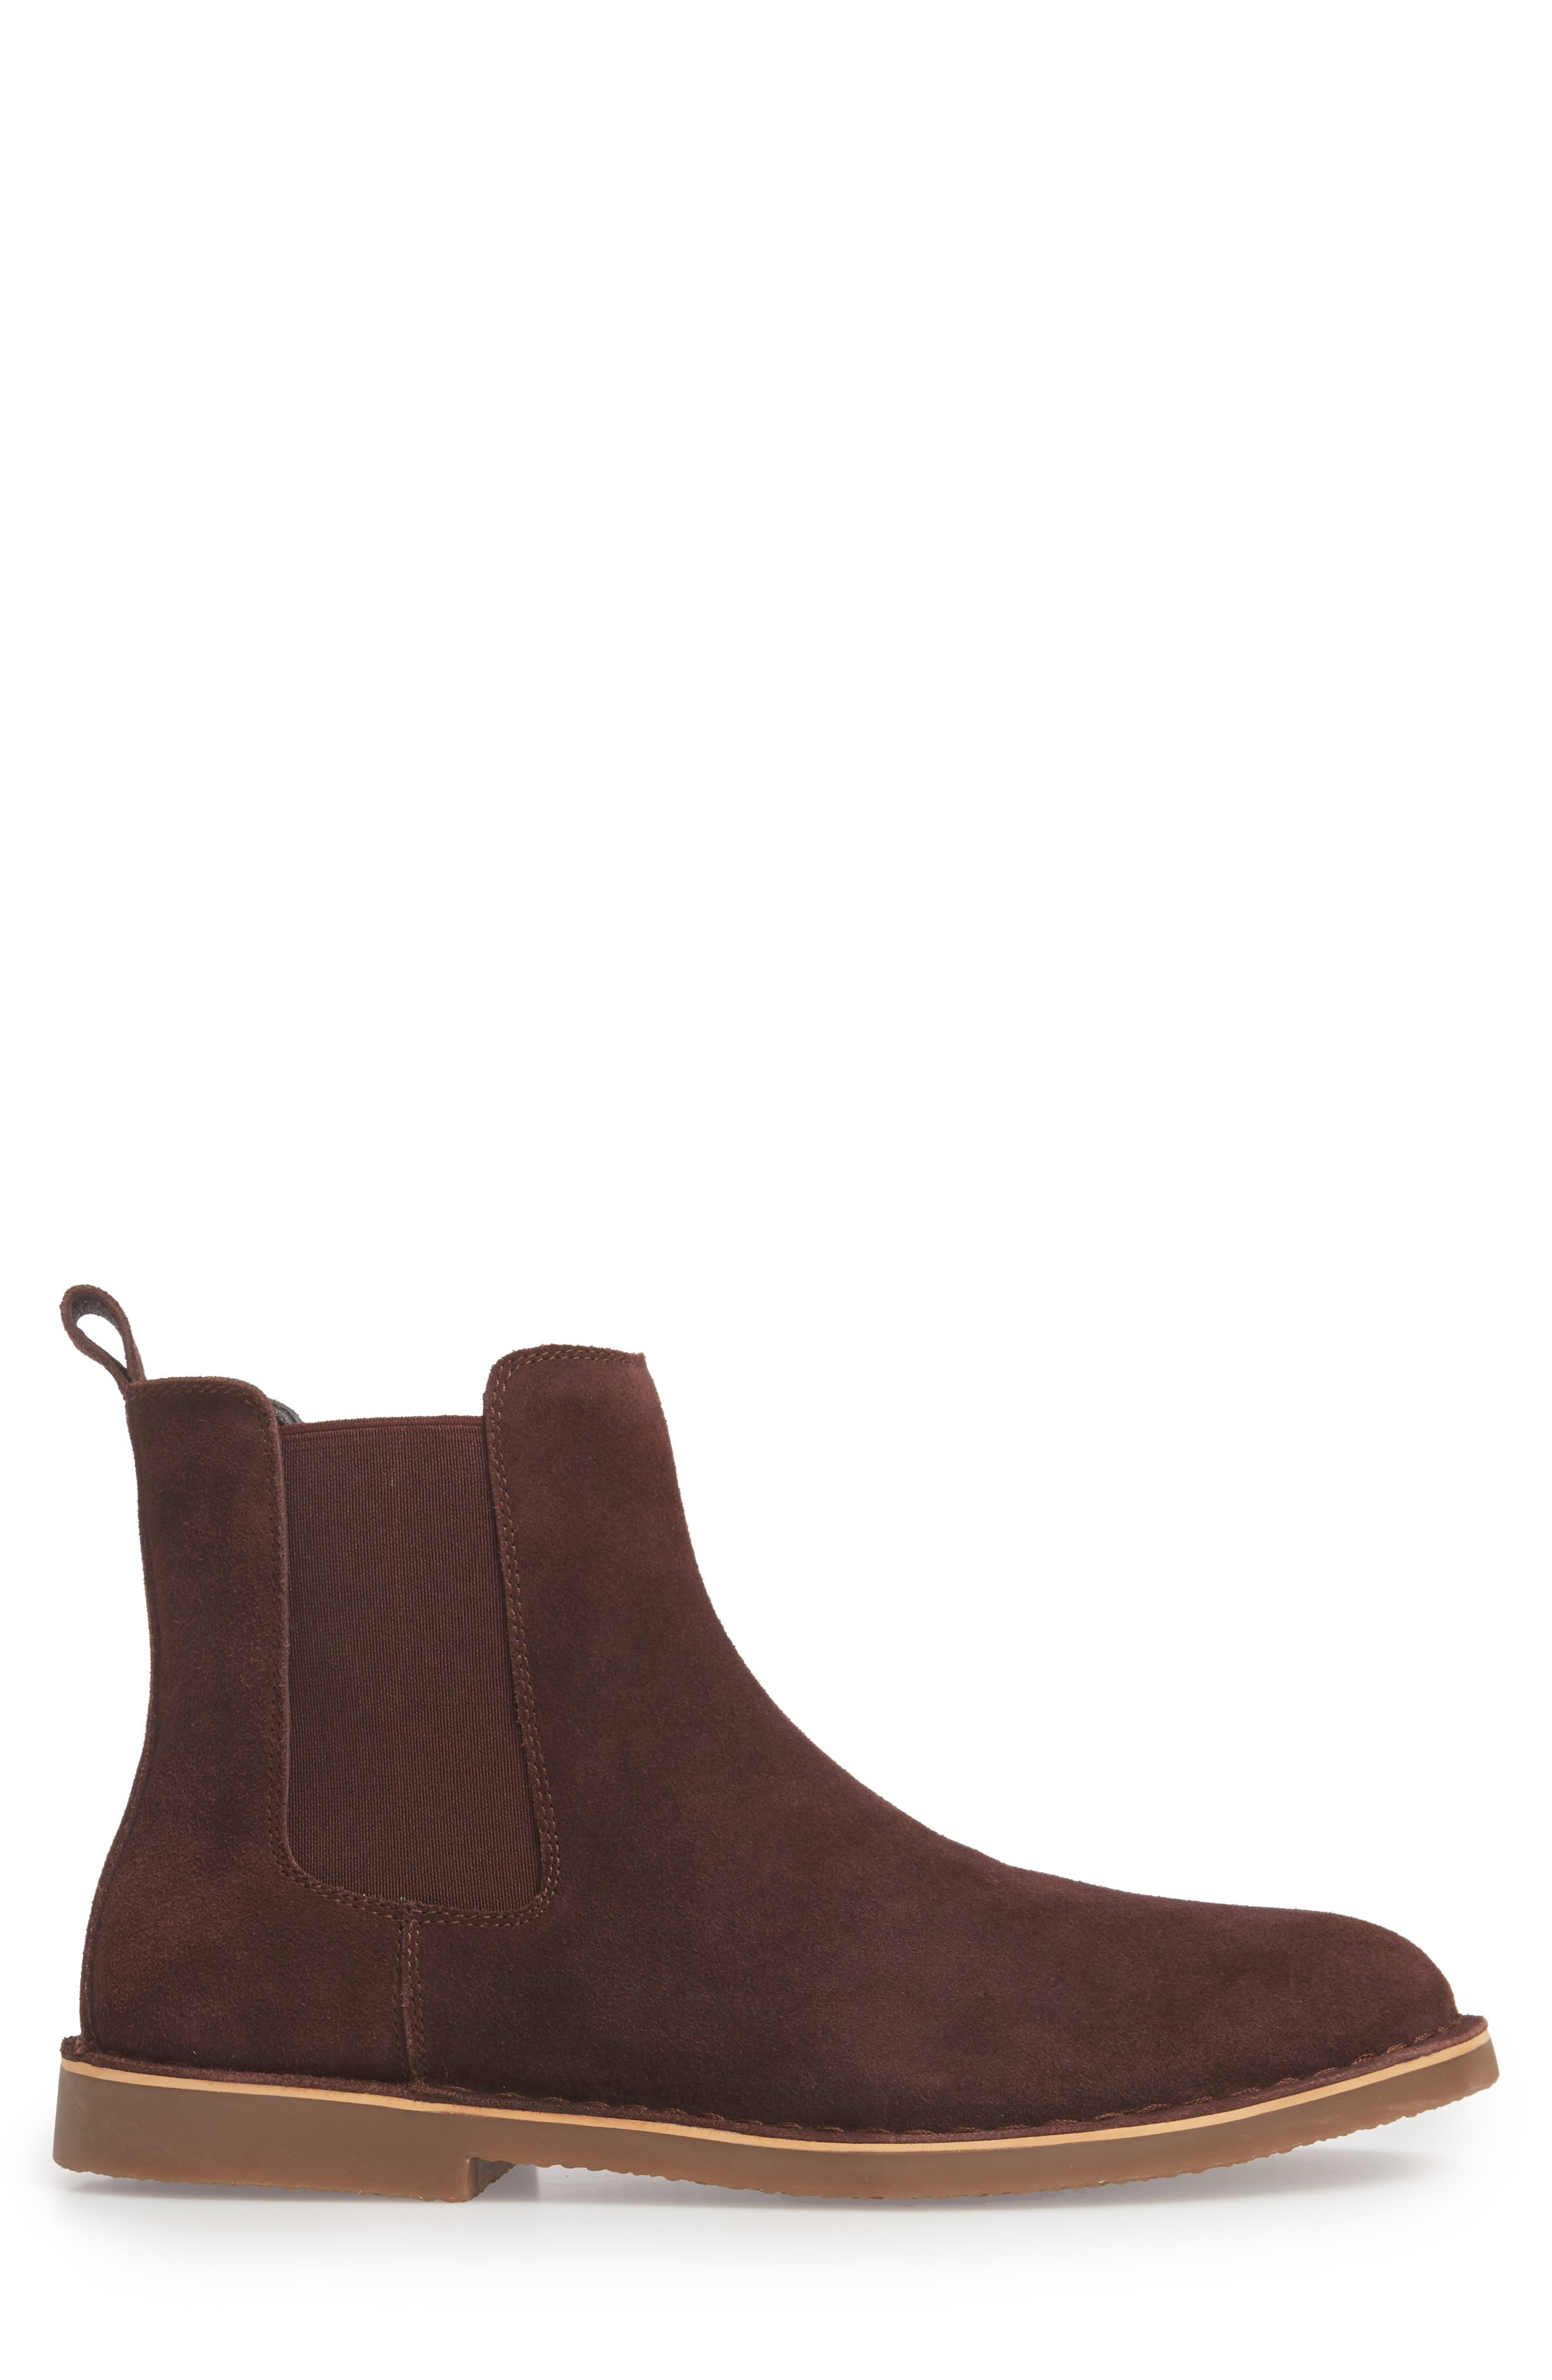 Mesa Chelsea Boot,                             Alternate thumbnail 3, color,                             BURGUNDY SUEDE